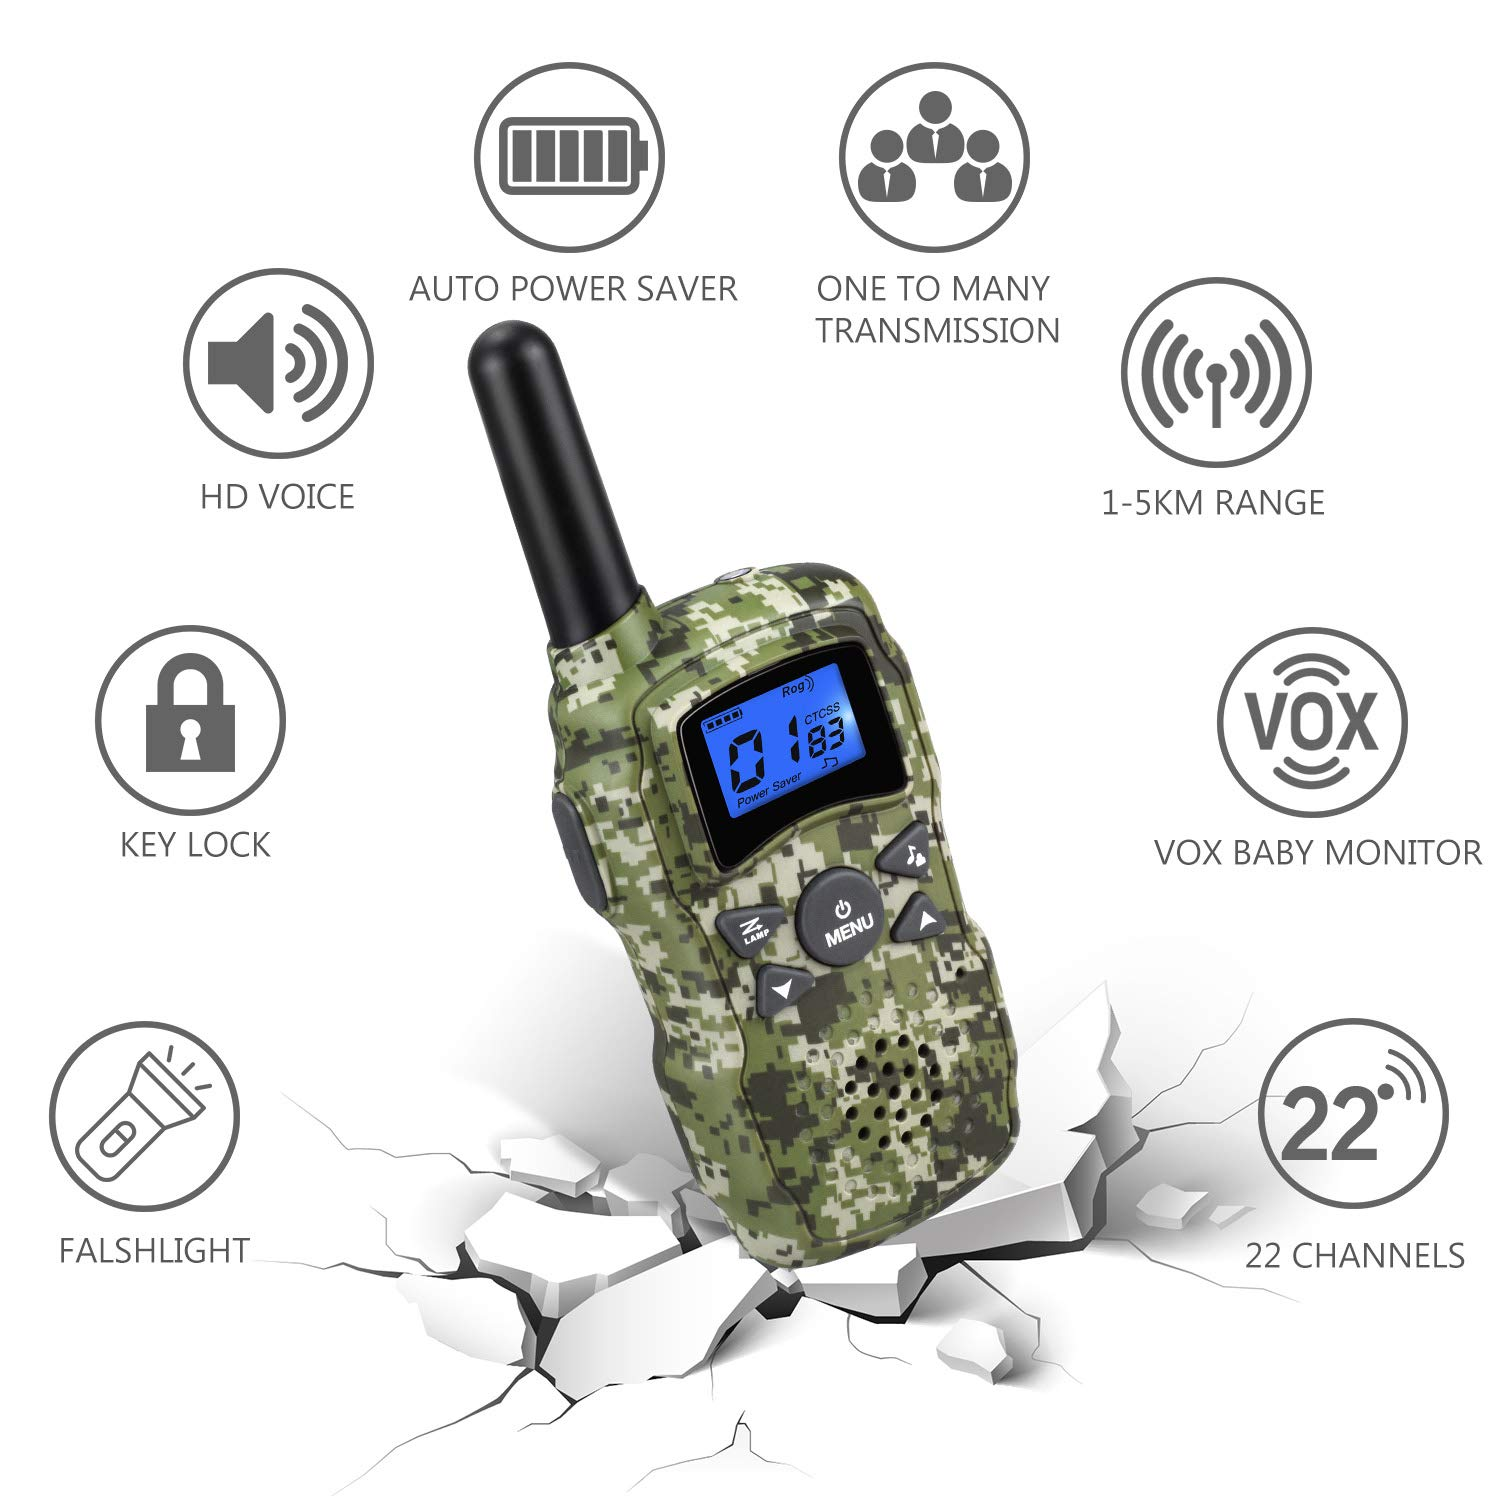 Wishouse 3 Walkie Talkies for Kids Rechargeable with Charger Battery,Family Two Way Radio Talkabout Walky Talky for Adults Long Range, Outdoor Fun Toy Birthday Gift for Girls Boys Teen Toddlers - Camo by Wishouse (Image #2)